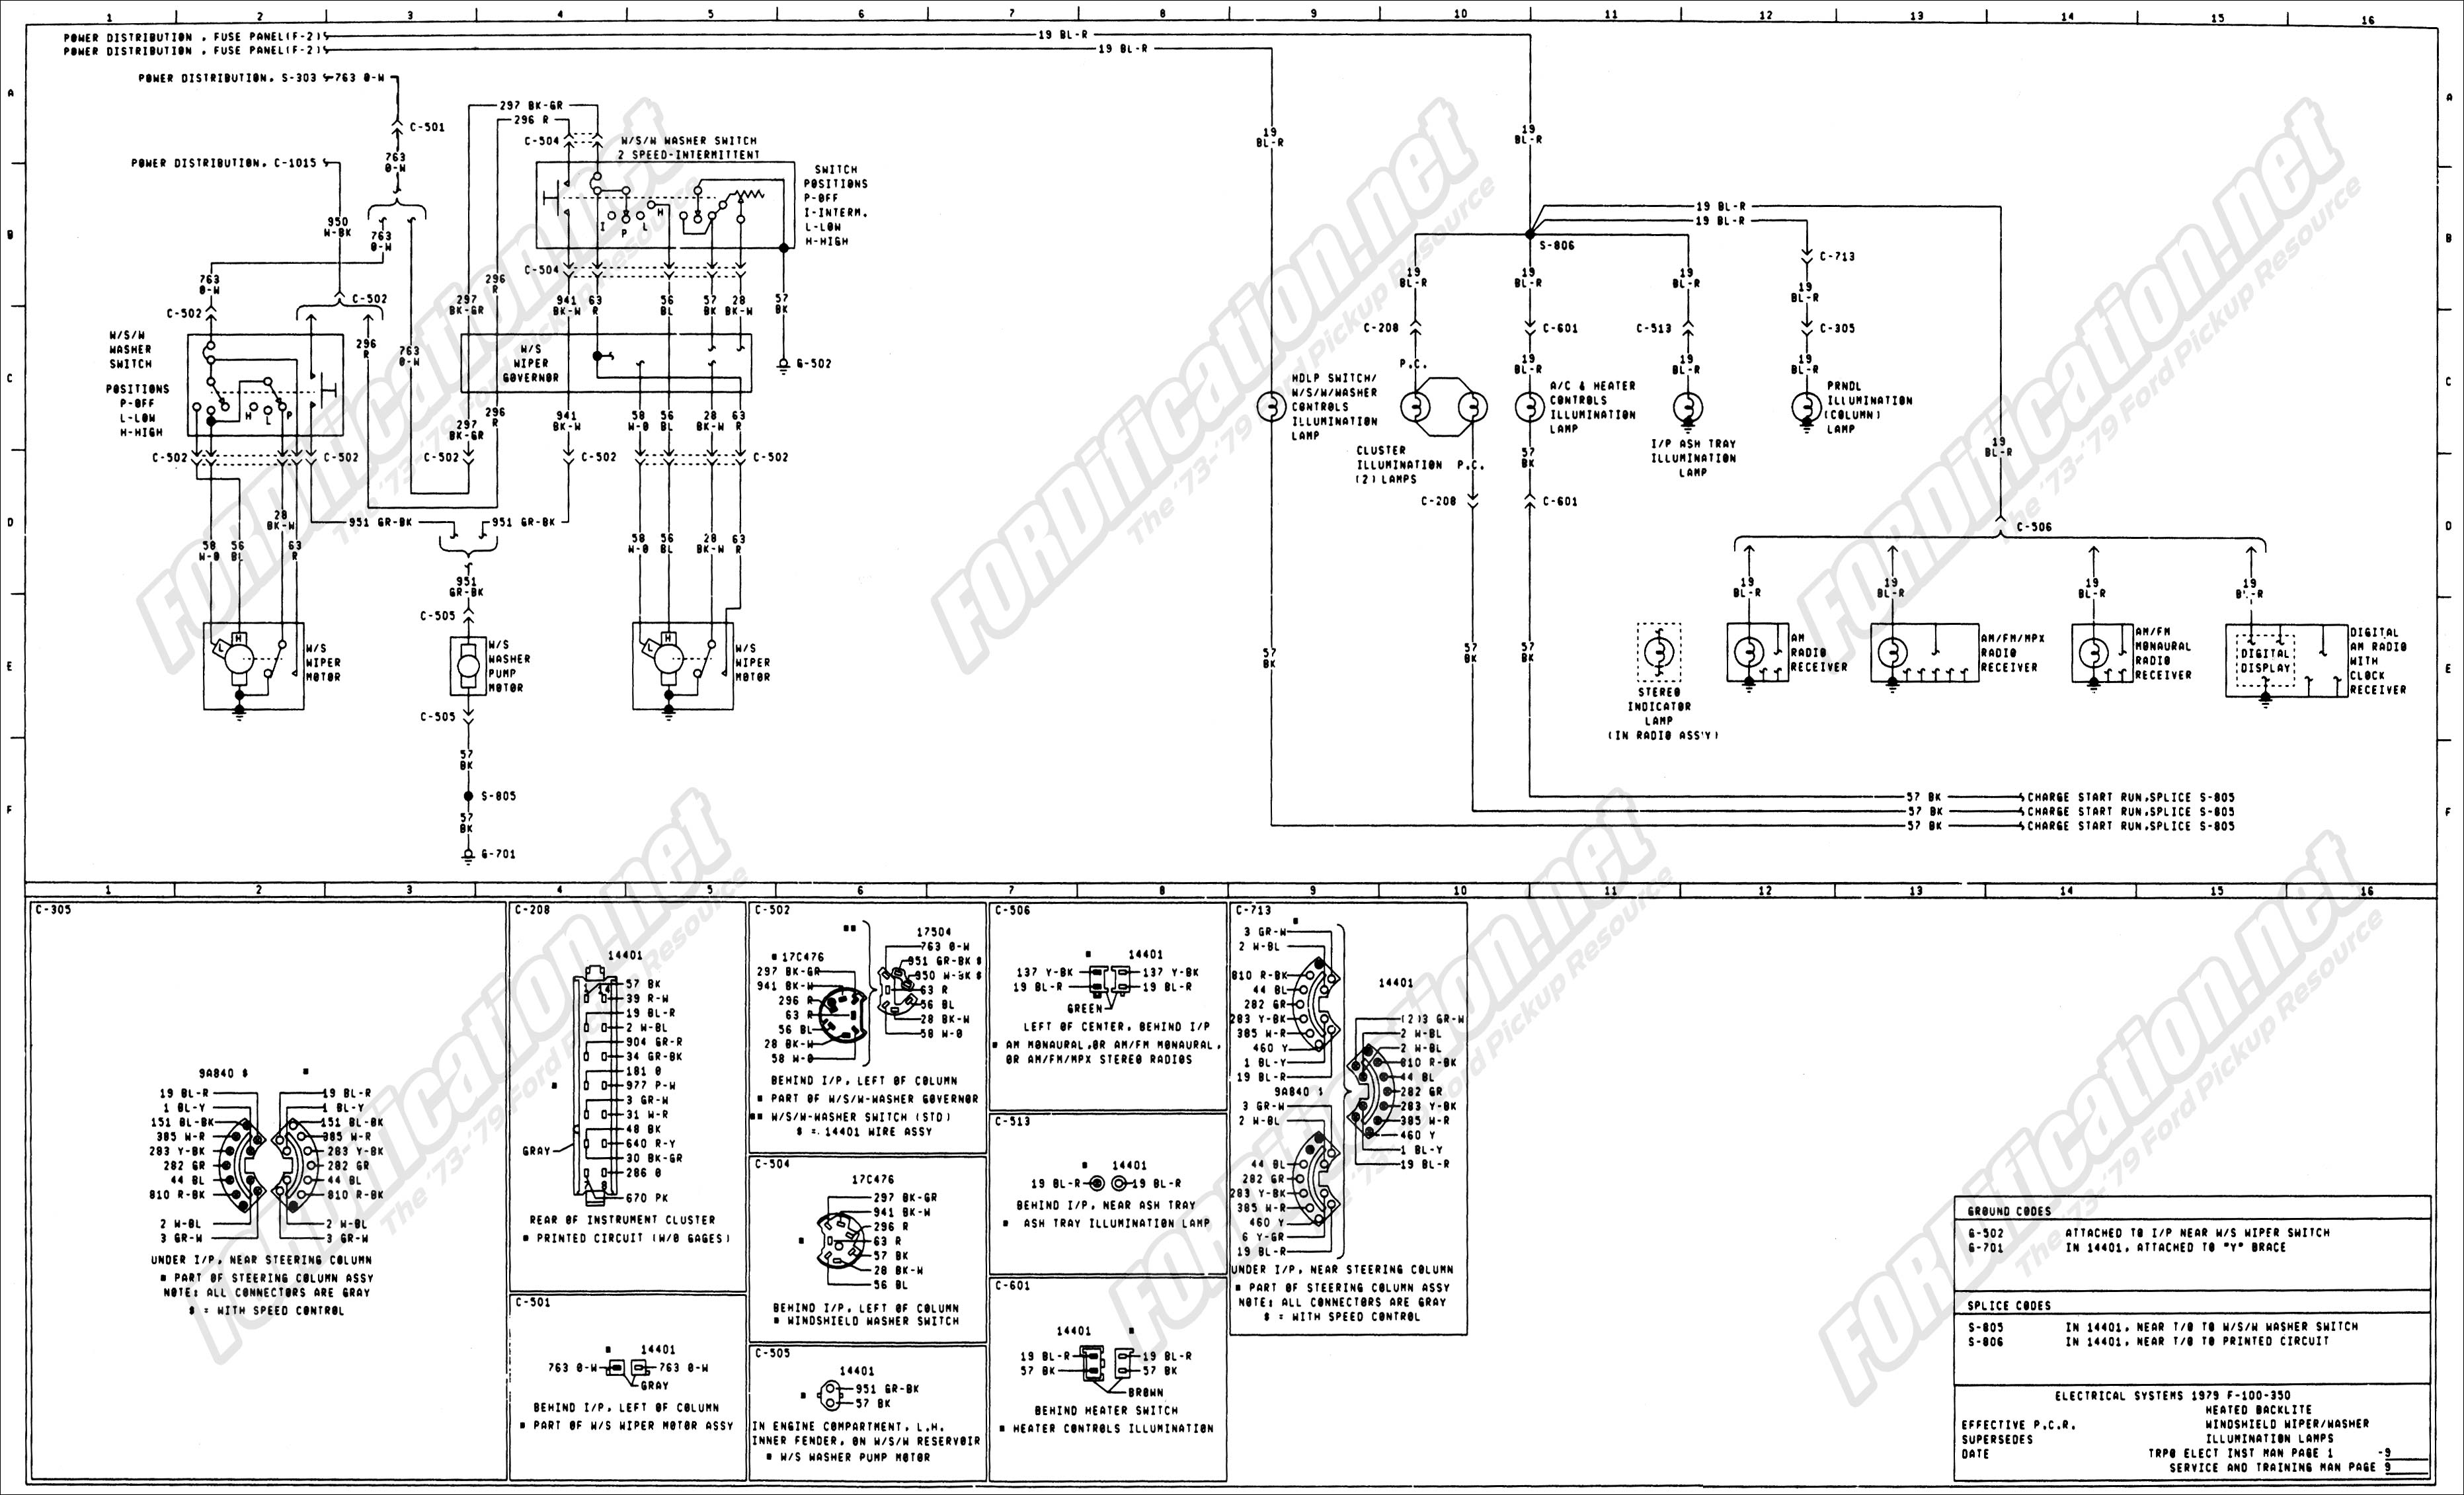 wiring_79master_9of9 ford 460 engine diagram wiring diagram simonand wiring diagrams for 2017 ford trucks at webbmarketing.co